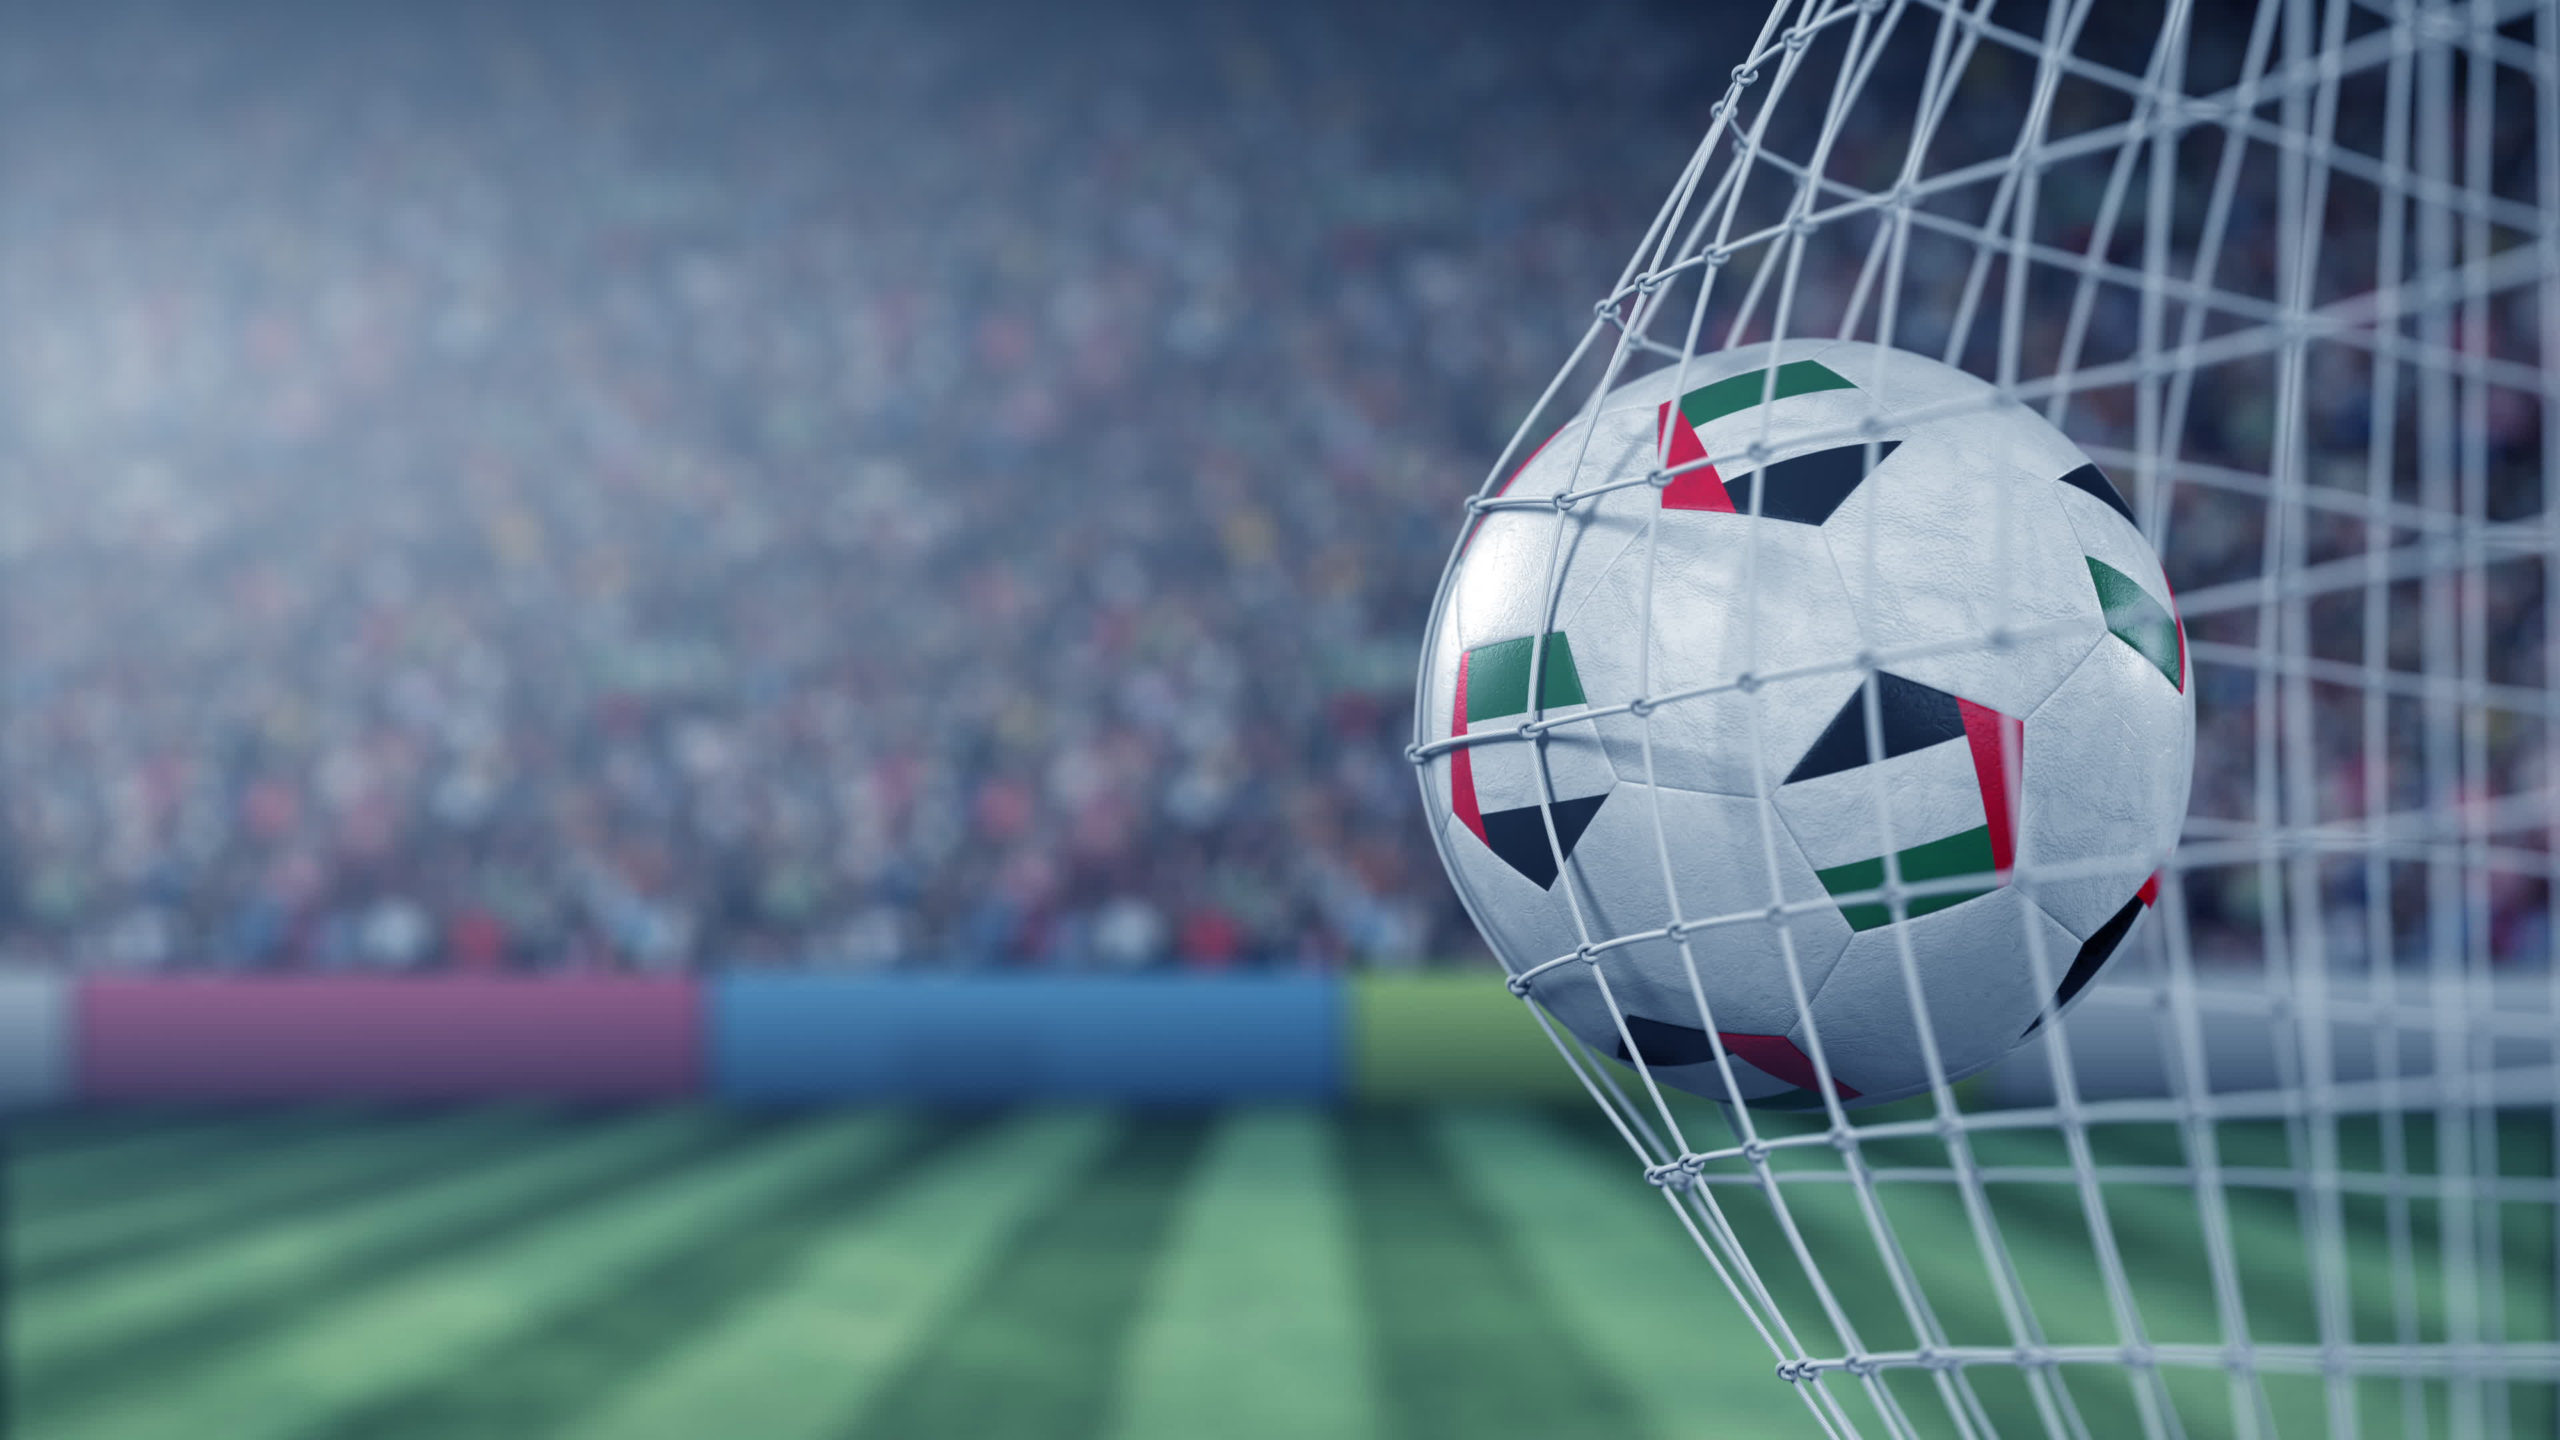 The love of sports throughout the UAE has grown in the country in the last few decades. Find out which Arab sports are tops among the Emirati population.